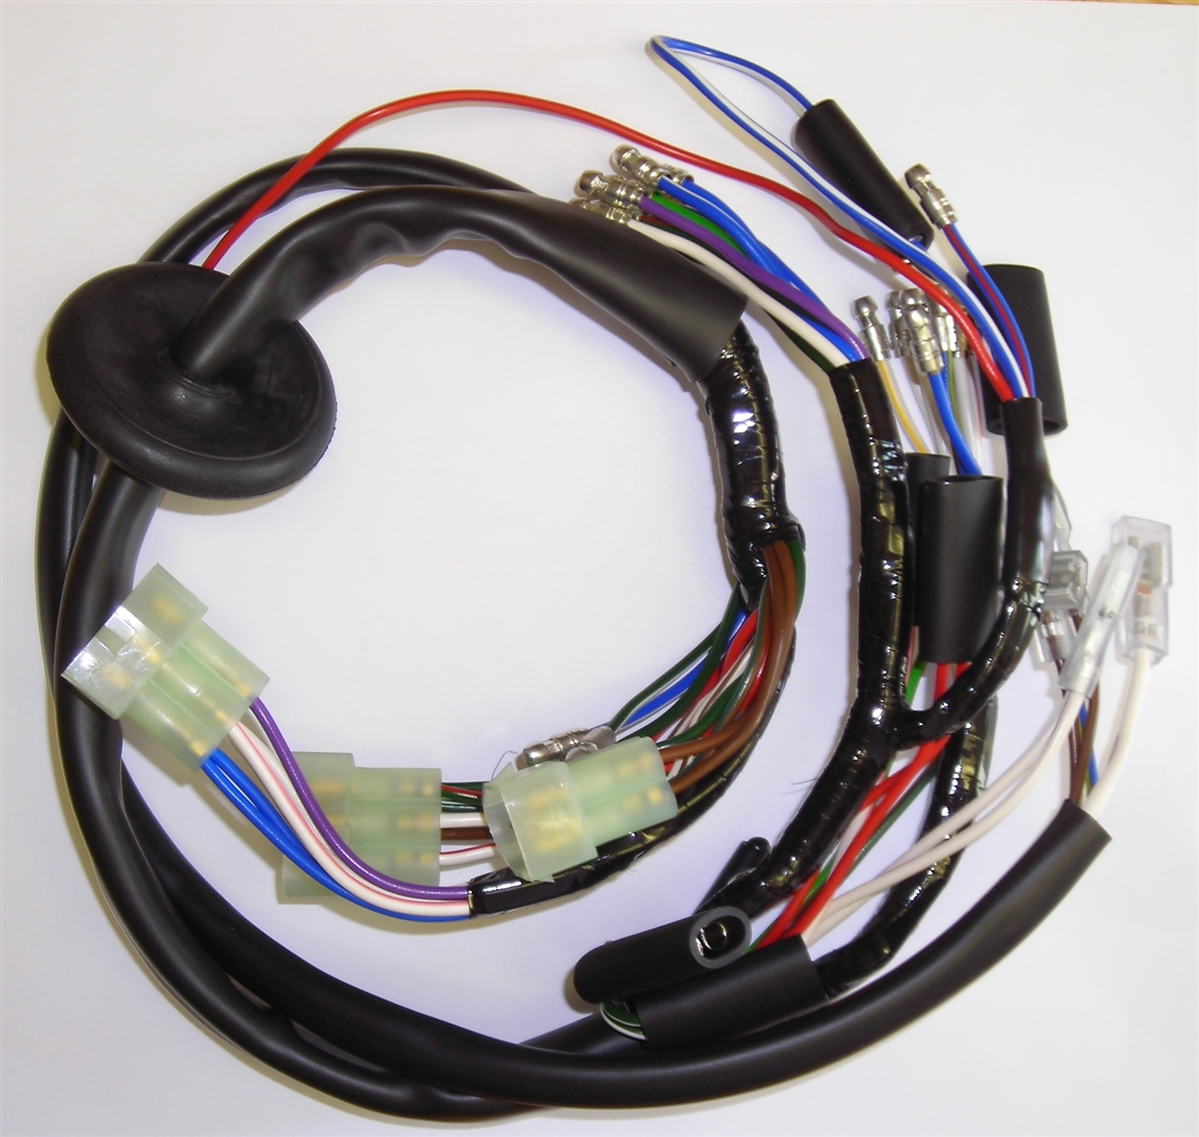 MC116PP 2?1374671892 commando 850cc mk3 motorcycle headlamp wiring harness headlamp wiring harness at honlapkeszites.co